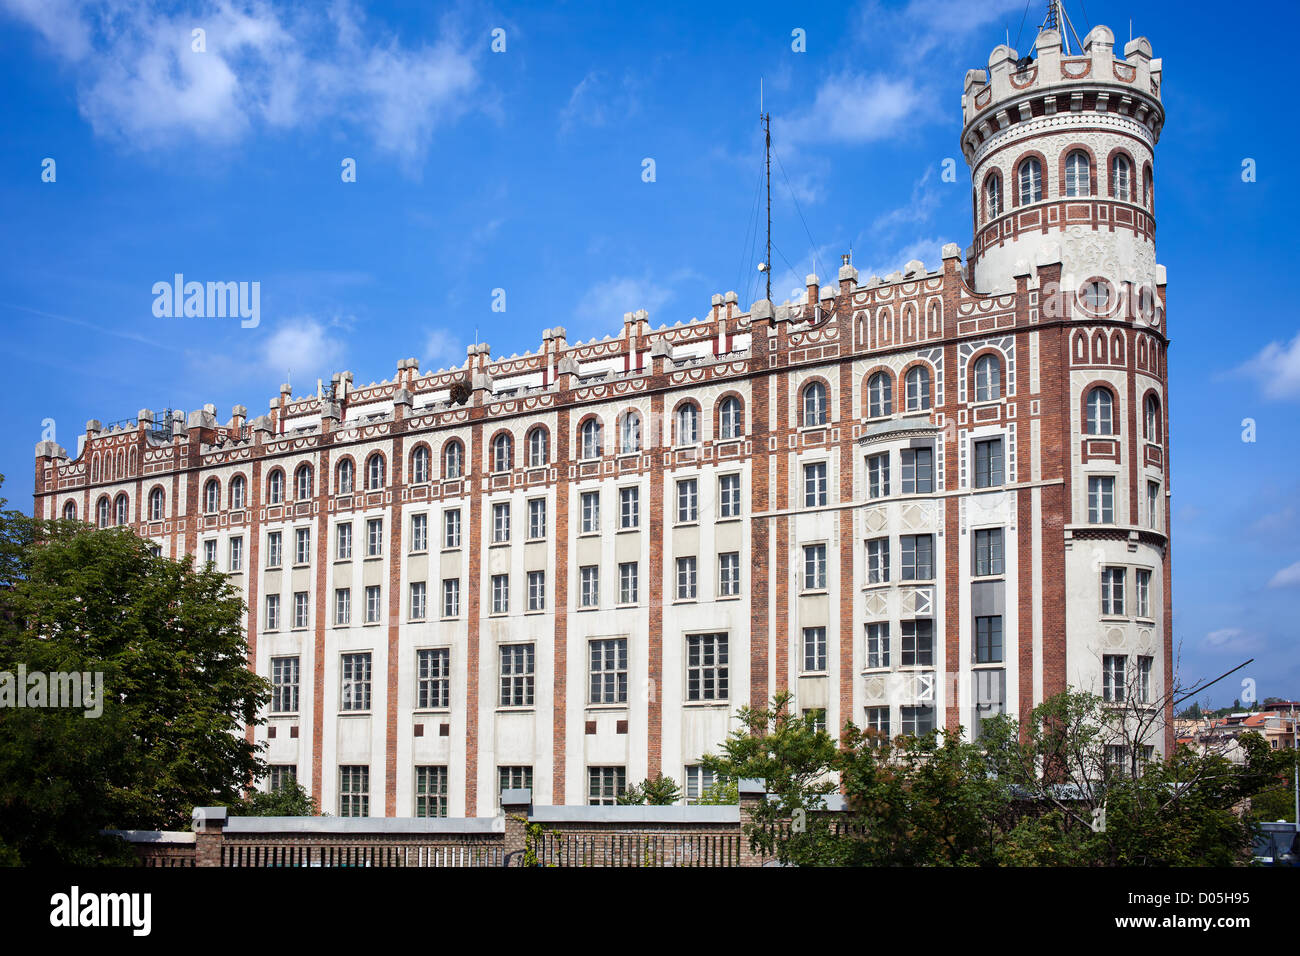 Postal Palace (old post office building) from 1921 at Szell Kalman ter (Moszkva ter) in Budapest, Hungary. - Stock Image